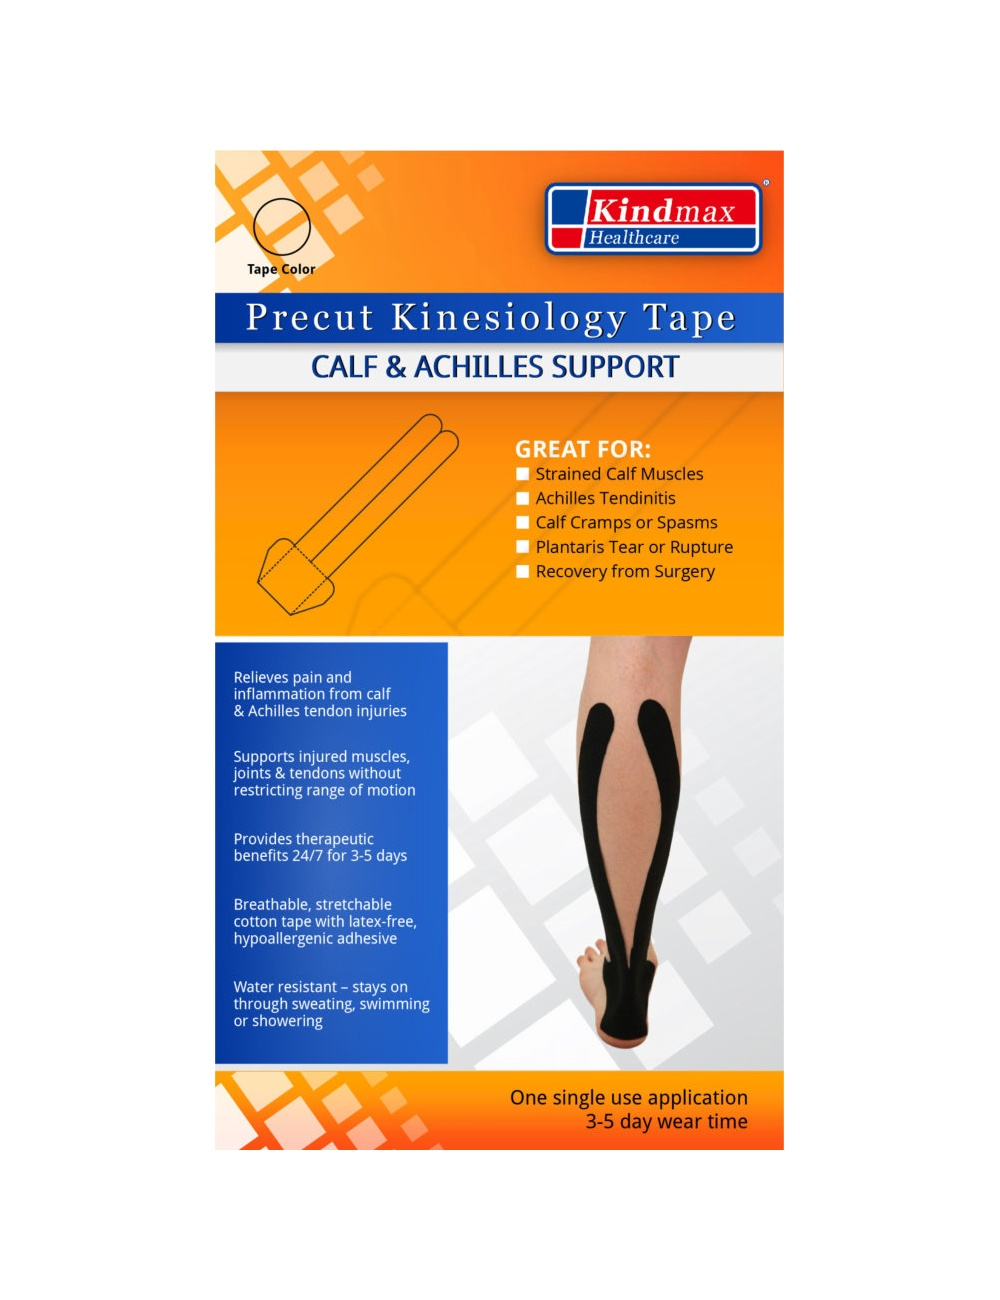 Kindmax Precut Calf & Achilles Support